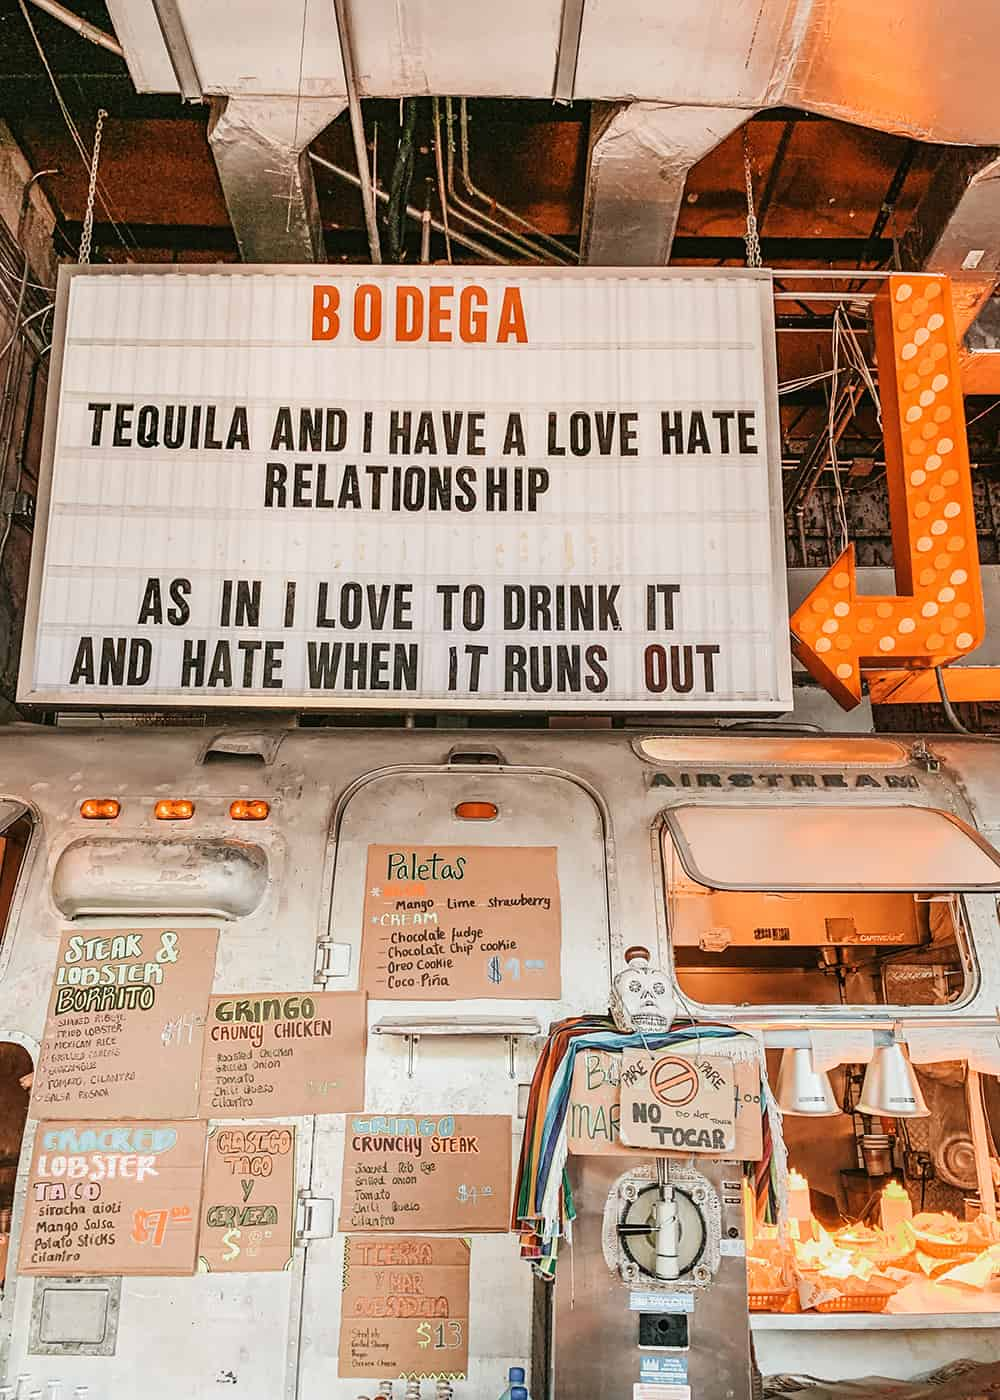 Bodega Taqueria y Tequila in South Beach Miami